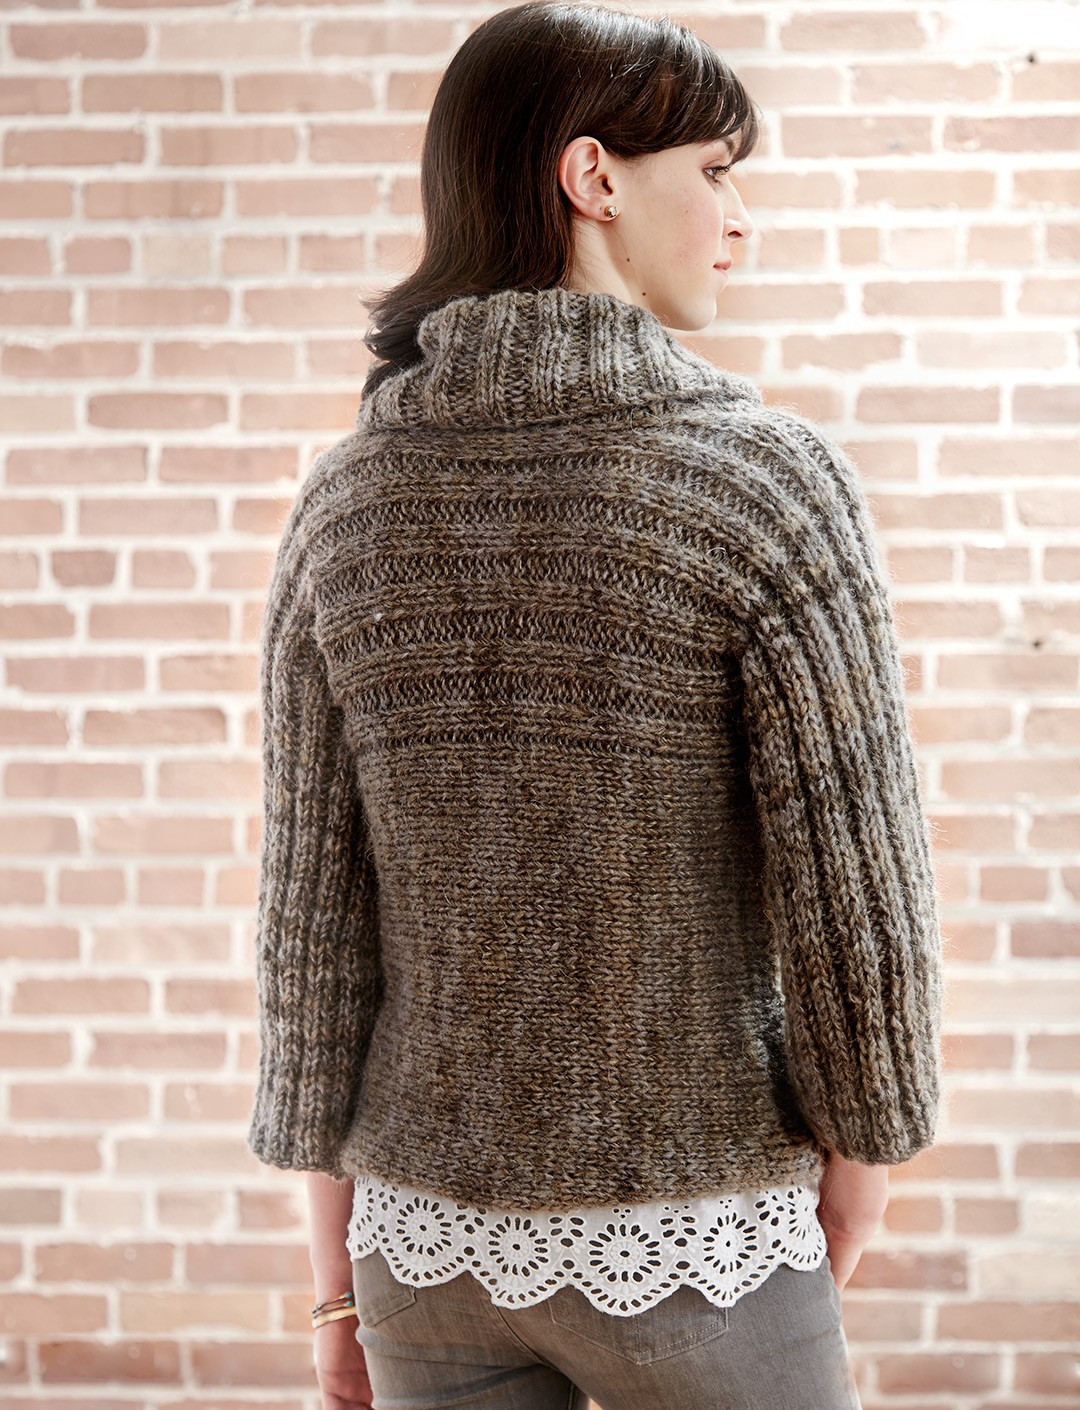 Luxury Patons Misty Morning Cowl Neck Knit Pattern Patons Yarn Patterns Of Adorable 48 Images Patons Yarn Patterns